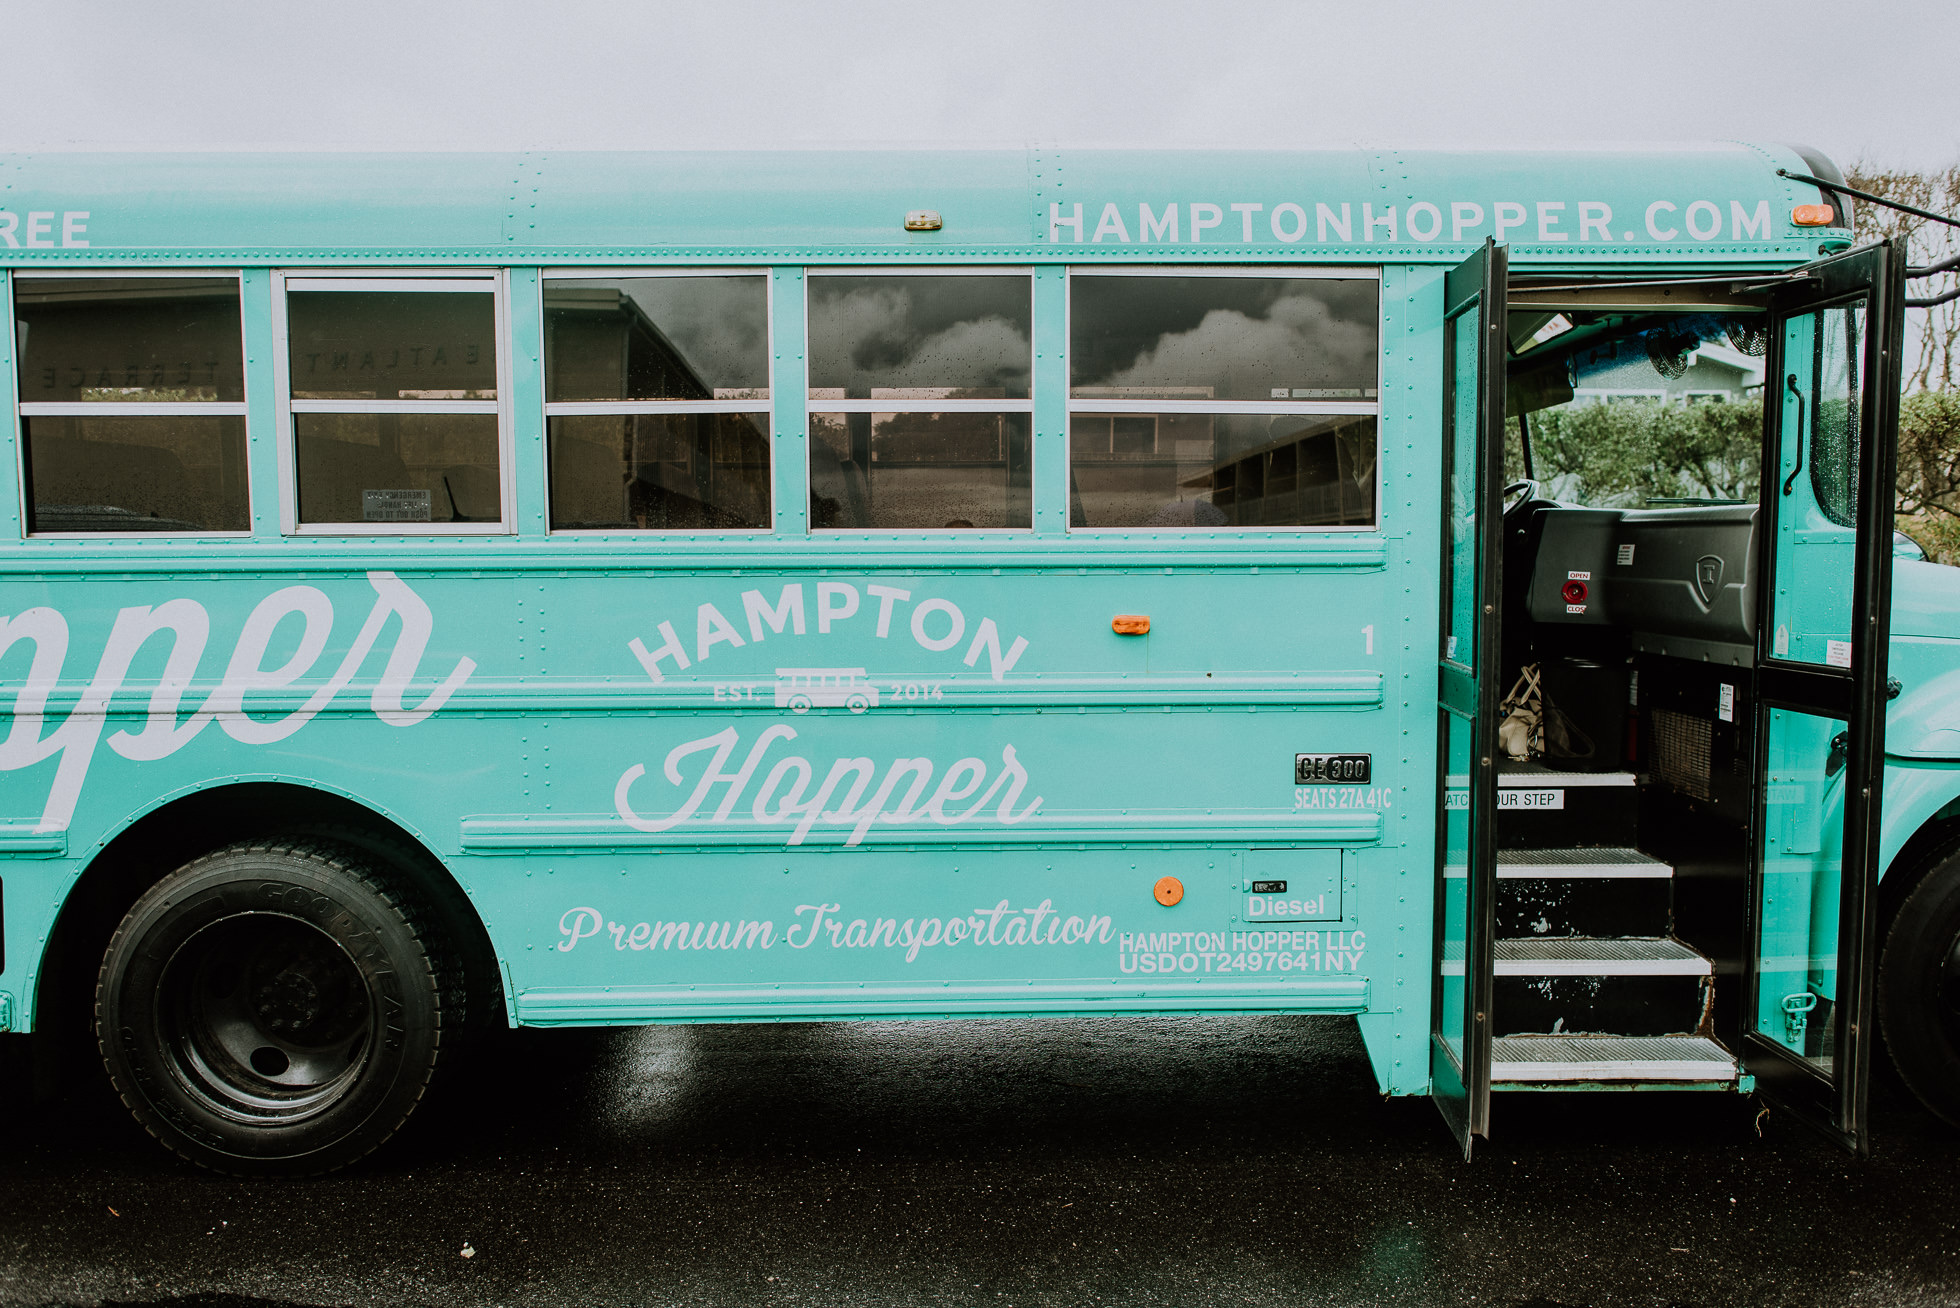 Hampton Hopper bus in Montauk photographed by Traverse the Tides